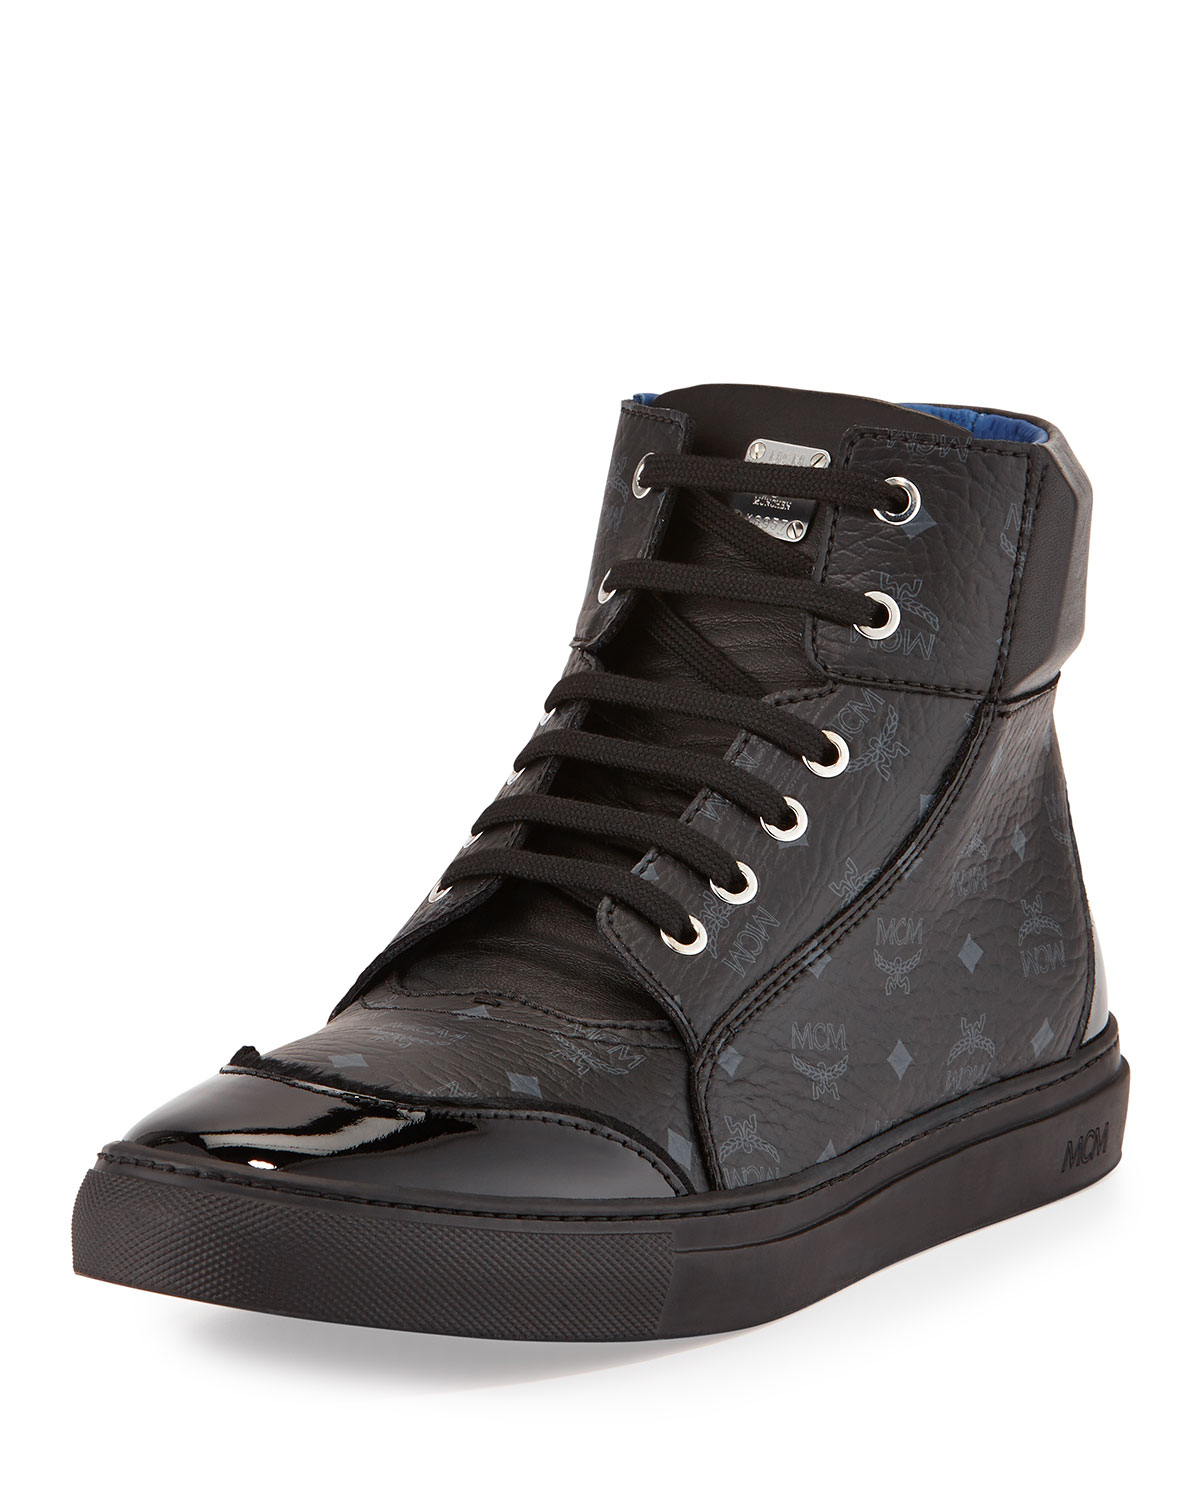 Mcm Leather High-top Sneaker In Black For Men